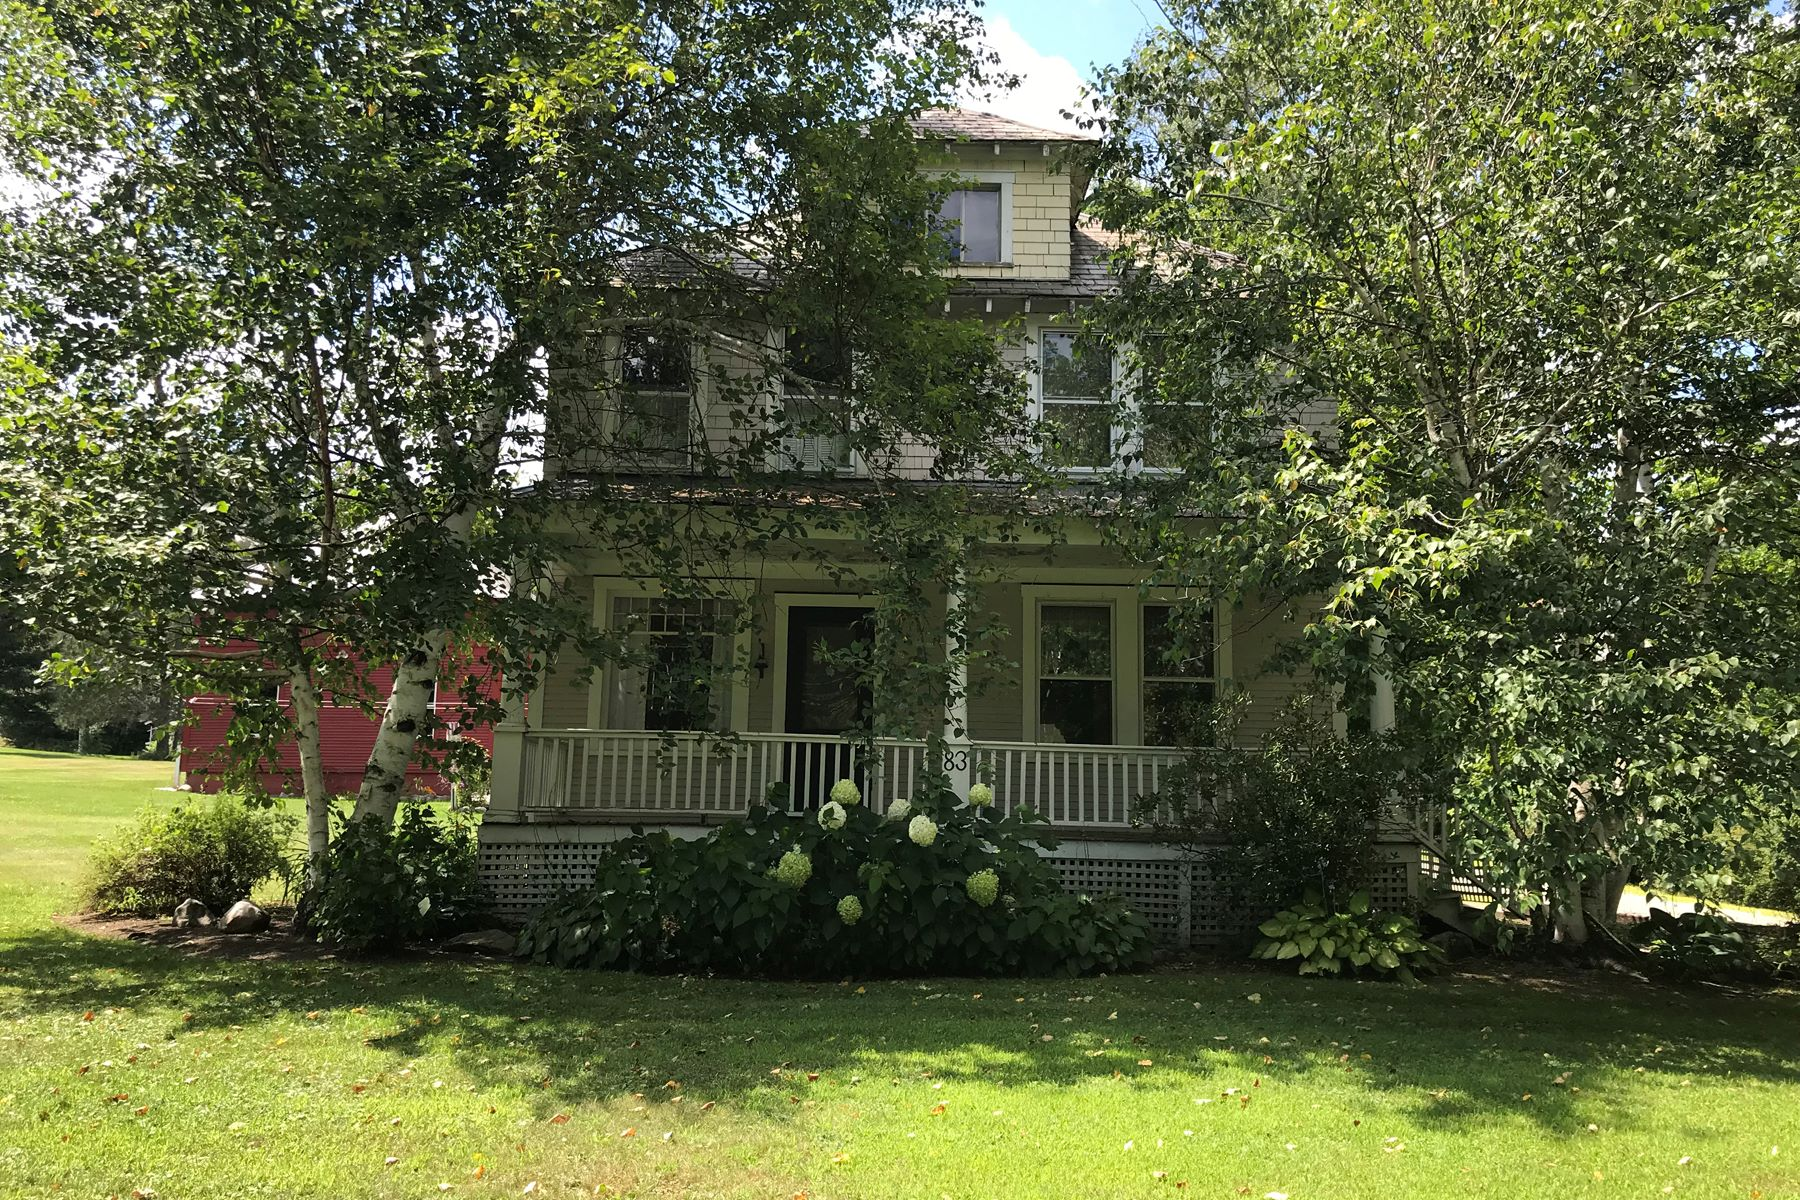 Single Family Homes for Sale at Charming Updated Greek Revival 83 N. Main St Danby, Vermont 05739 United States